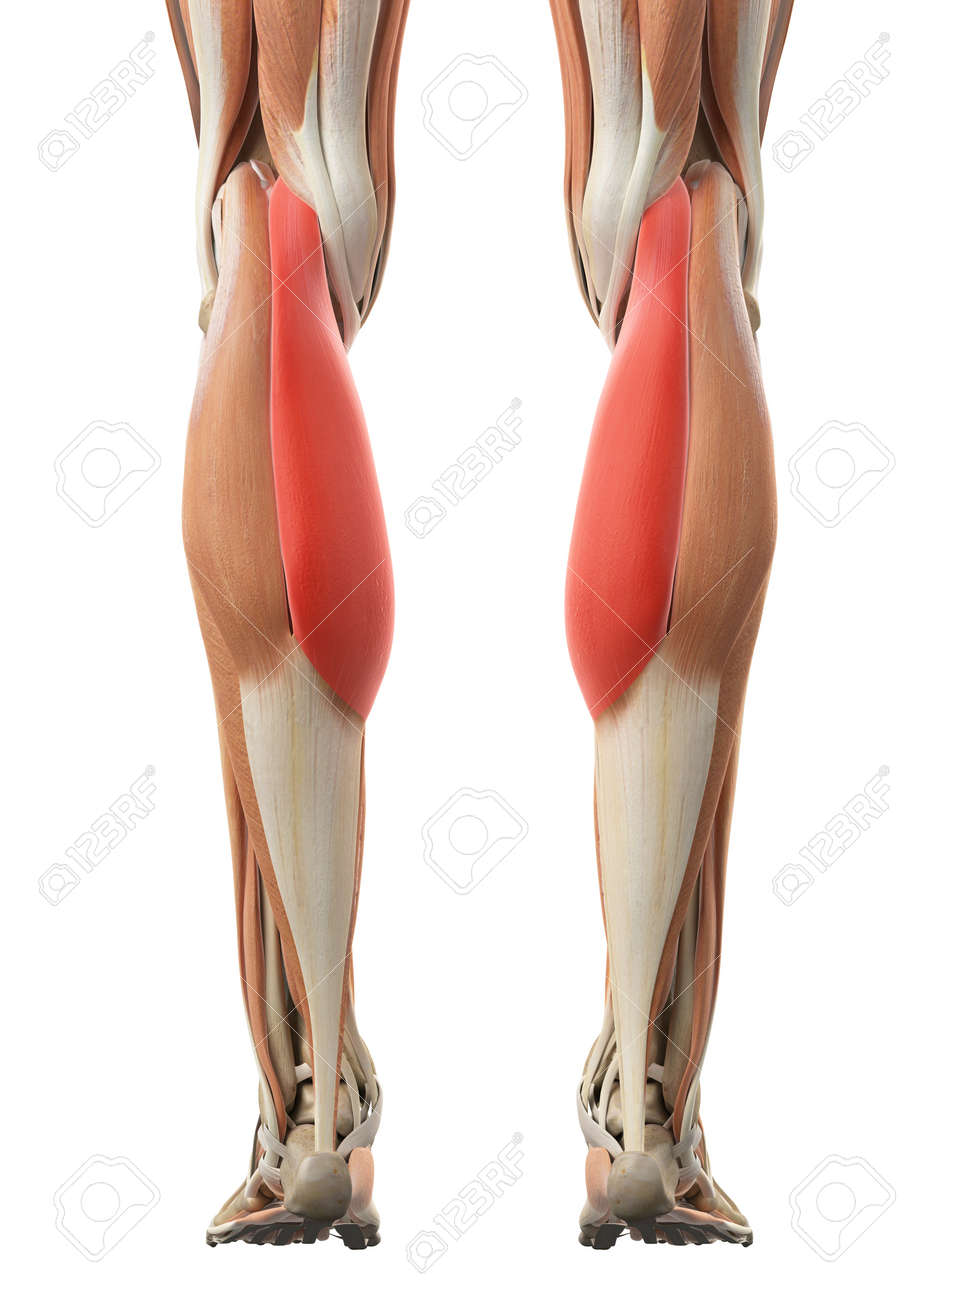 Medically Accurate Illustration Of The Gastrocnemius Medial Head ...